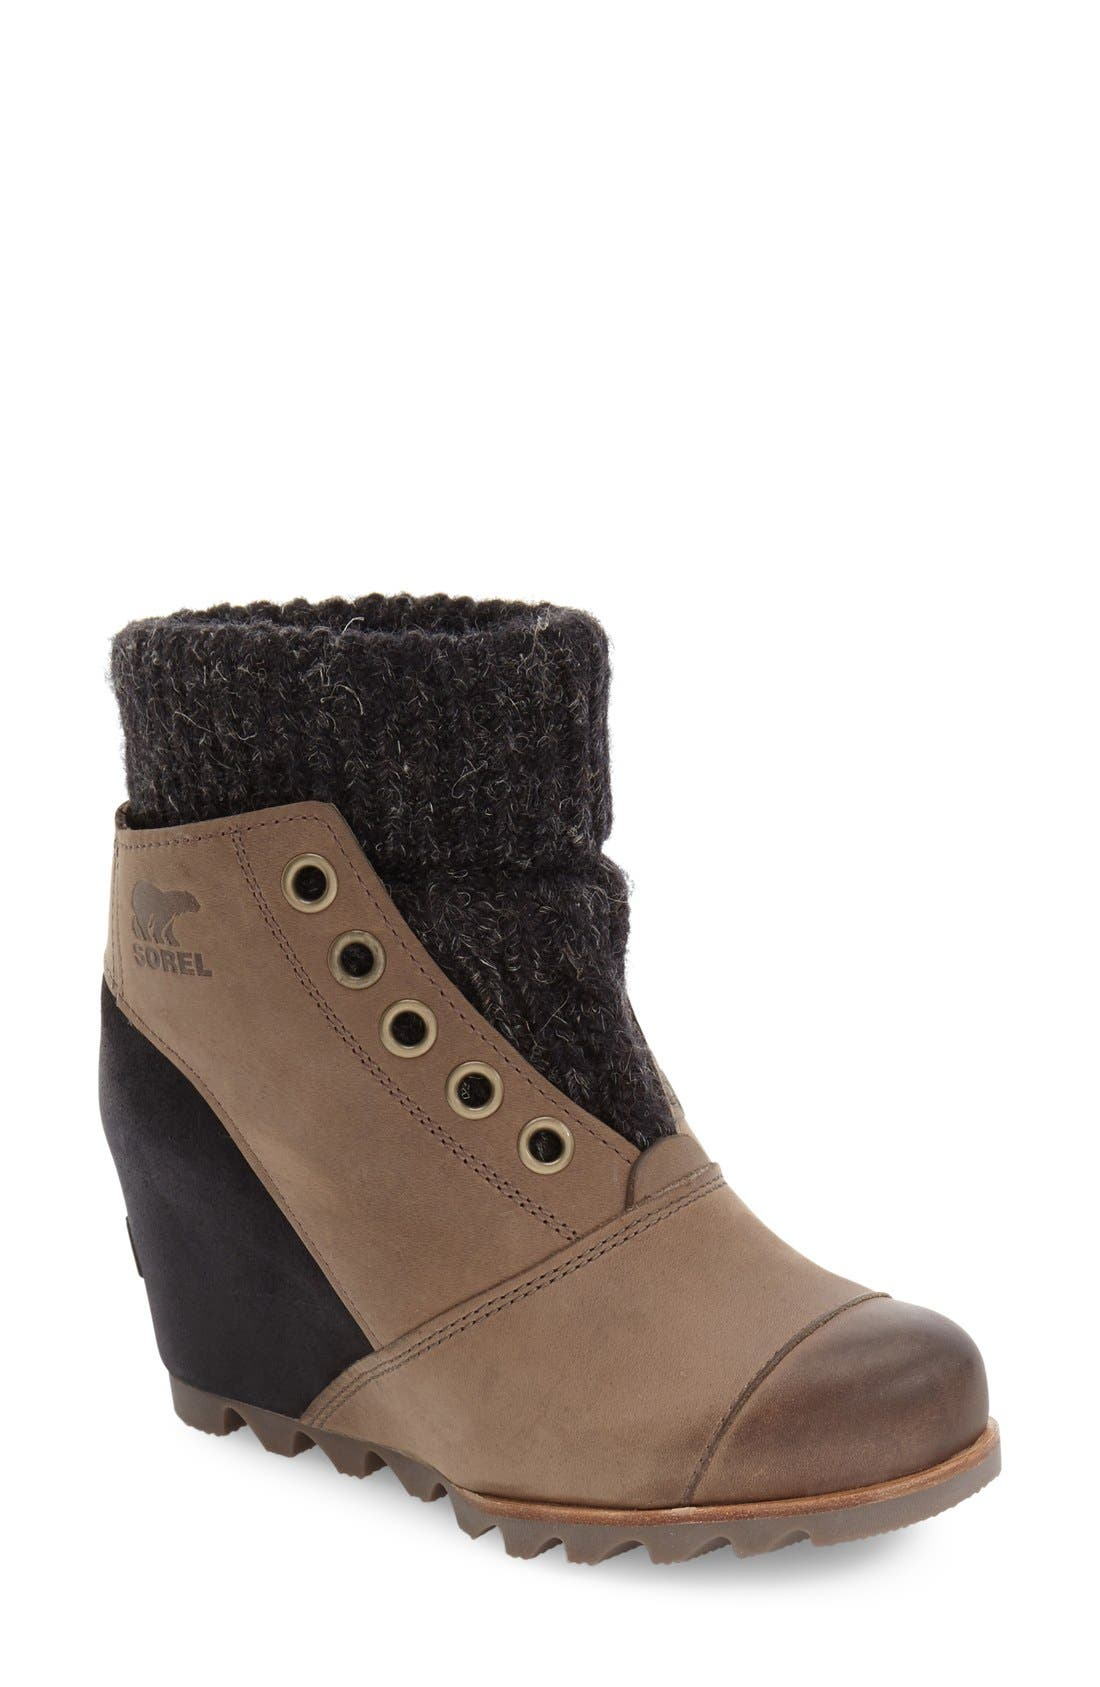 Main Image - SOREL Joanie Waterproof Wedge Bootie (Women)